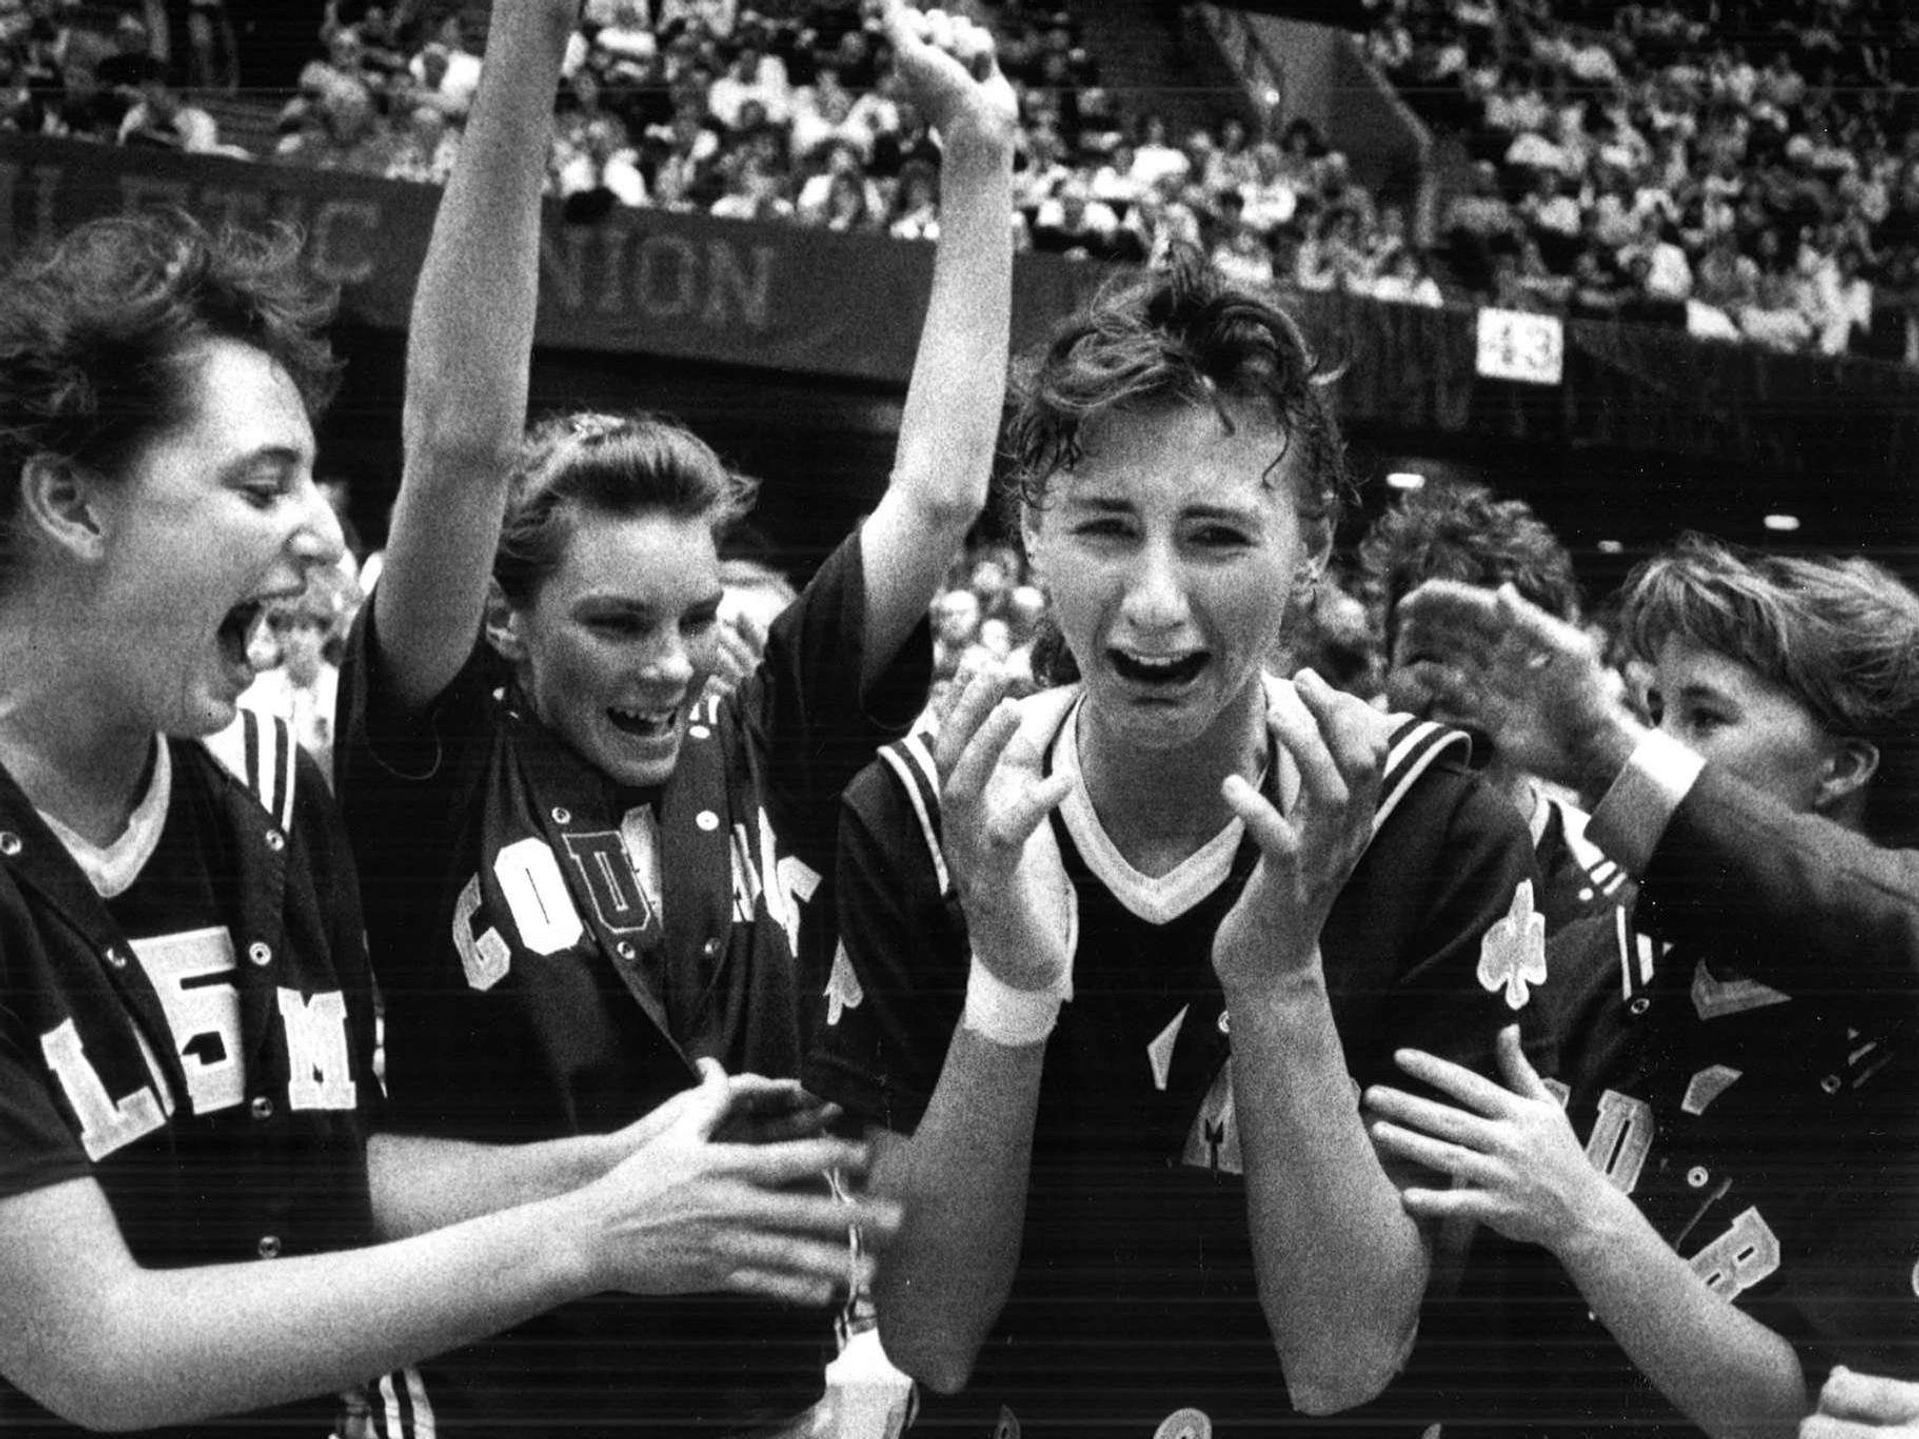 1990: Lisa Demuth of Waterloo Columbus, center, reacts as she is named captain of the all-tournament team, moments after Demuth led the Sailors to a championship against Cedar Rapids Jefferson, 63-58. Register file photo